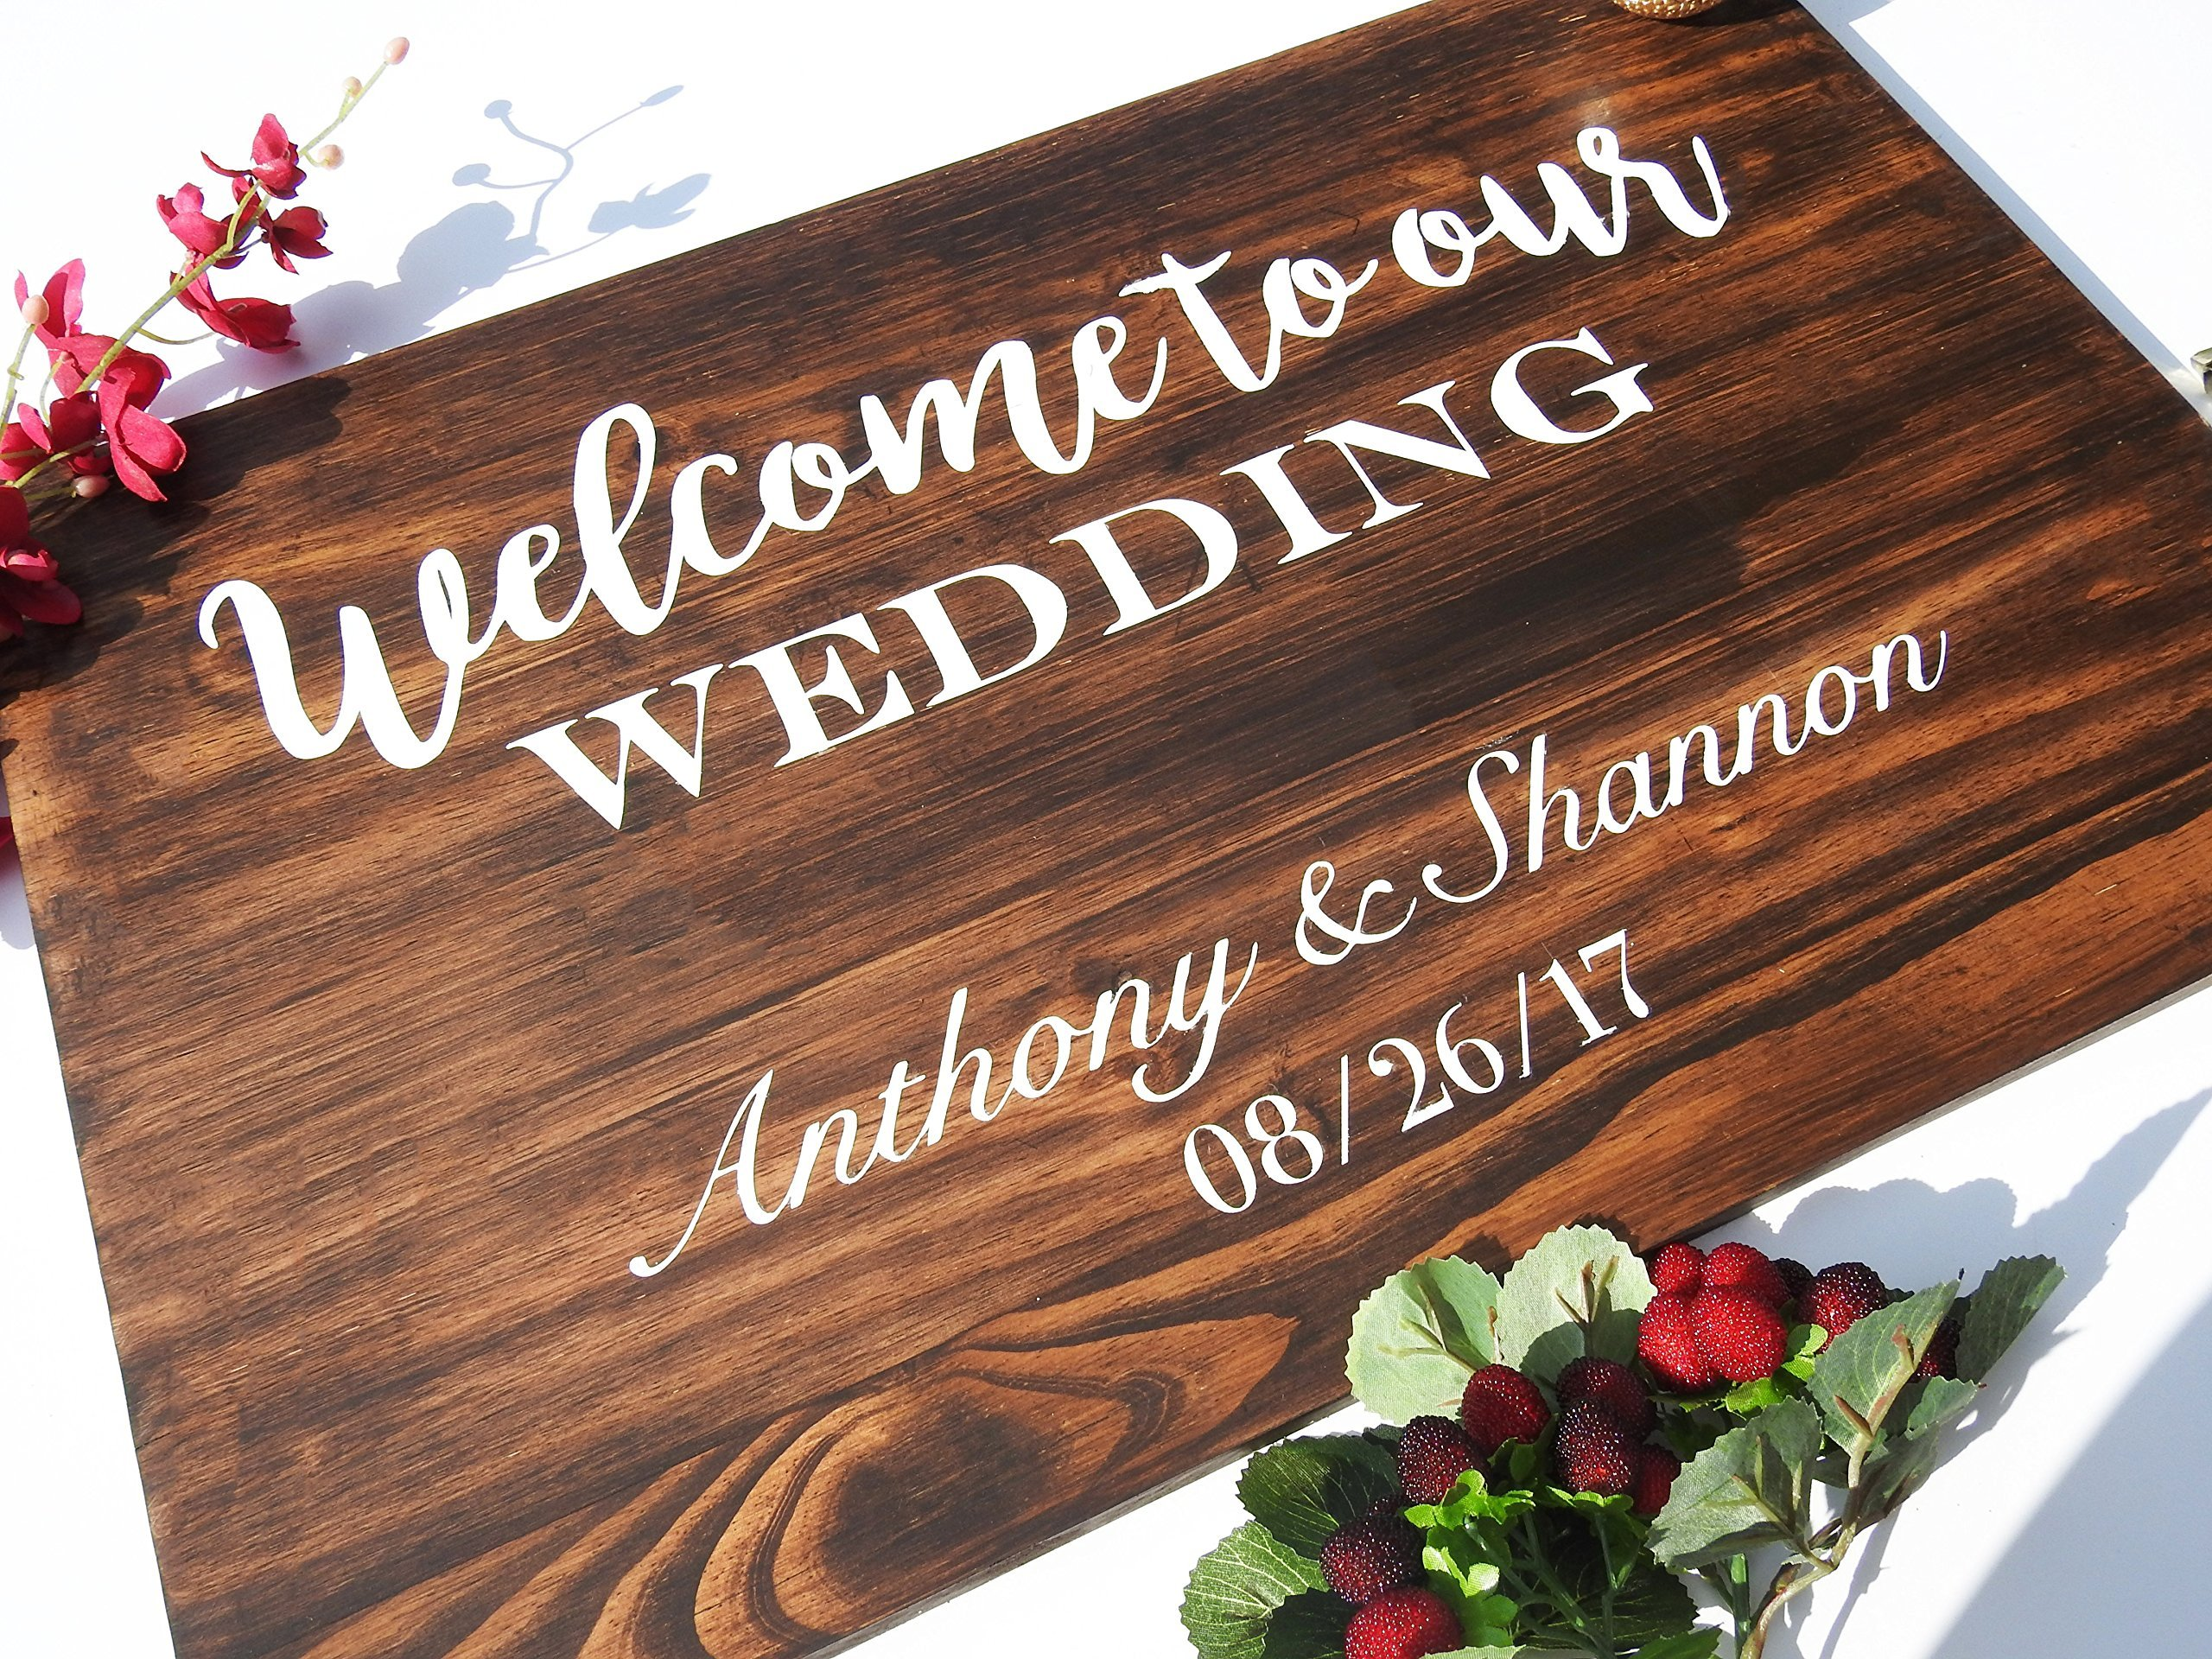 Wedding Welcome Sign - Wooden Wedding Signs - Wood .sign#134